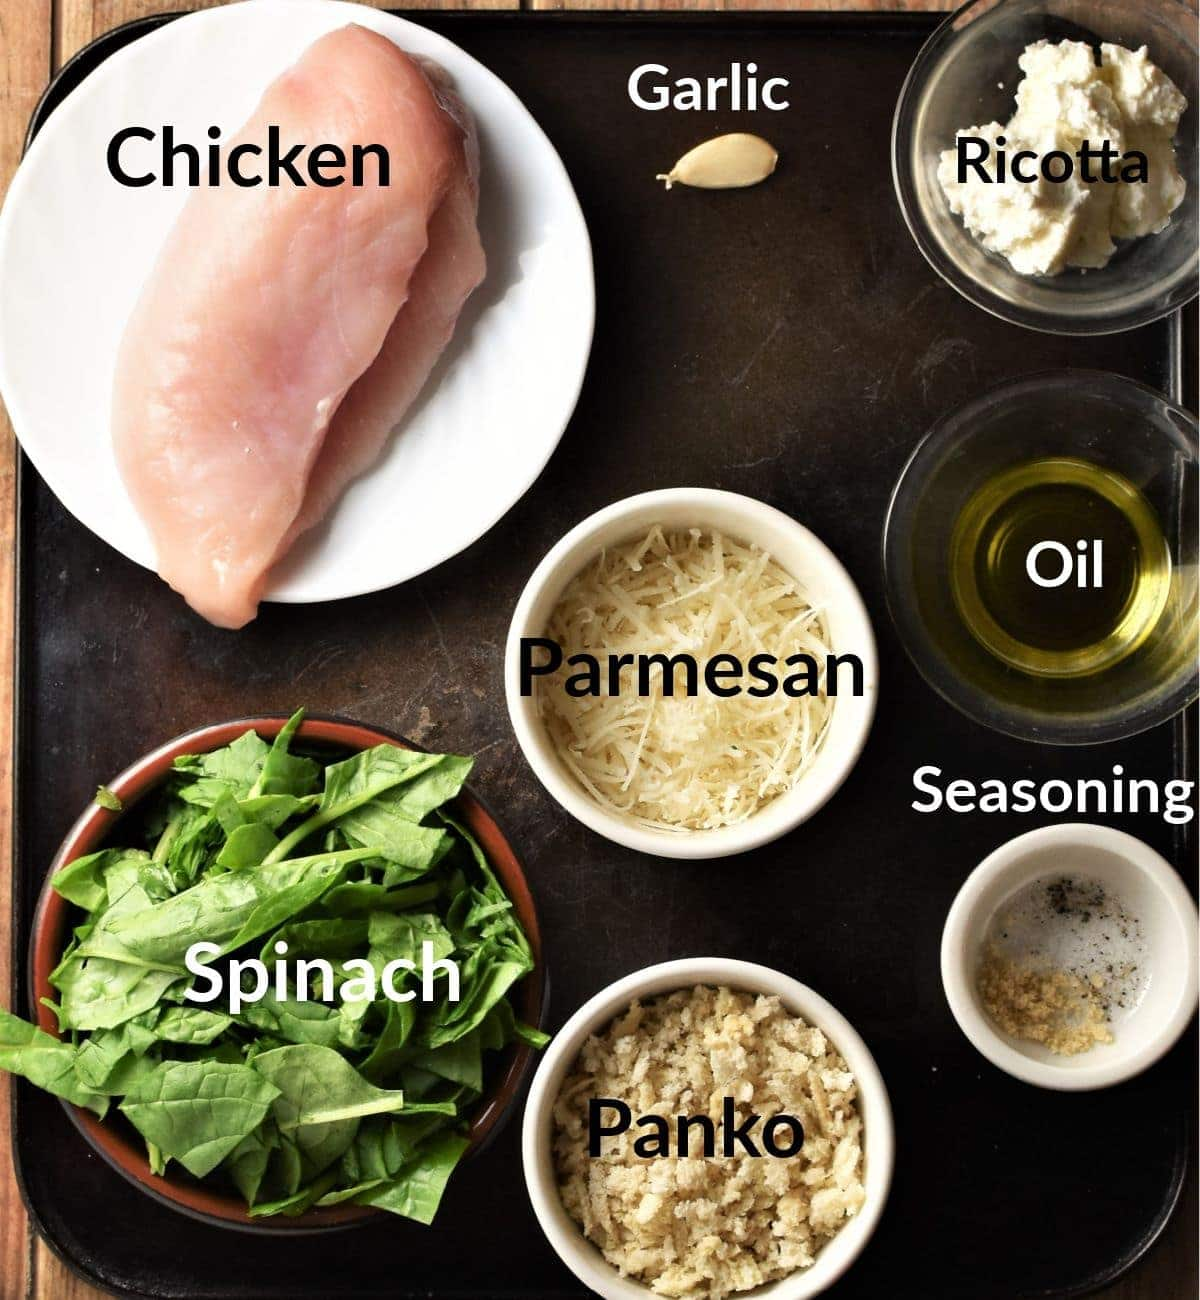 Spinach and cheese chicken ingredients in individual dishes.